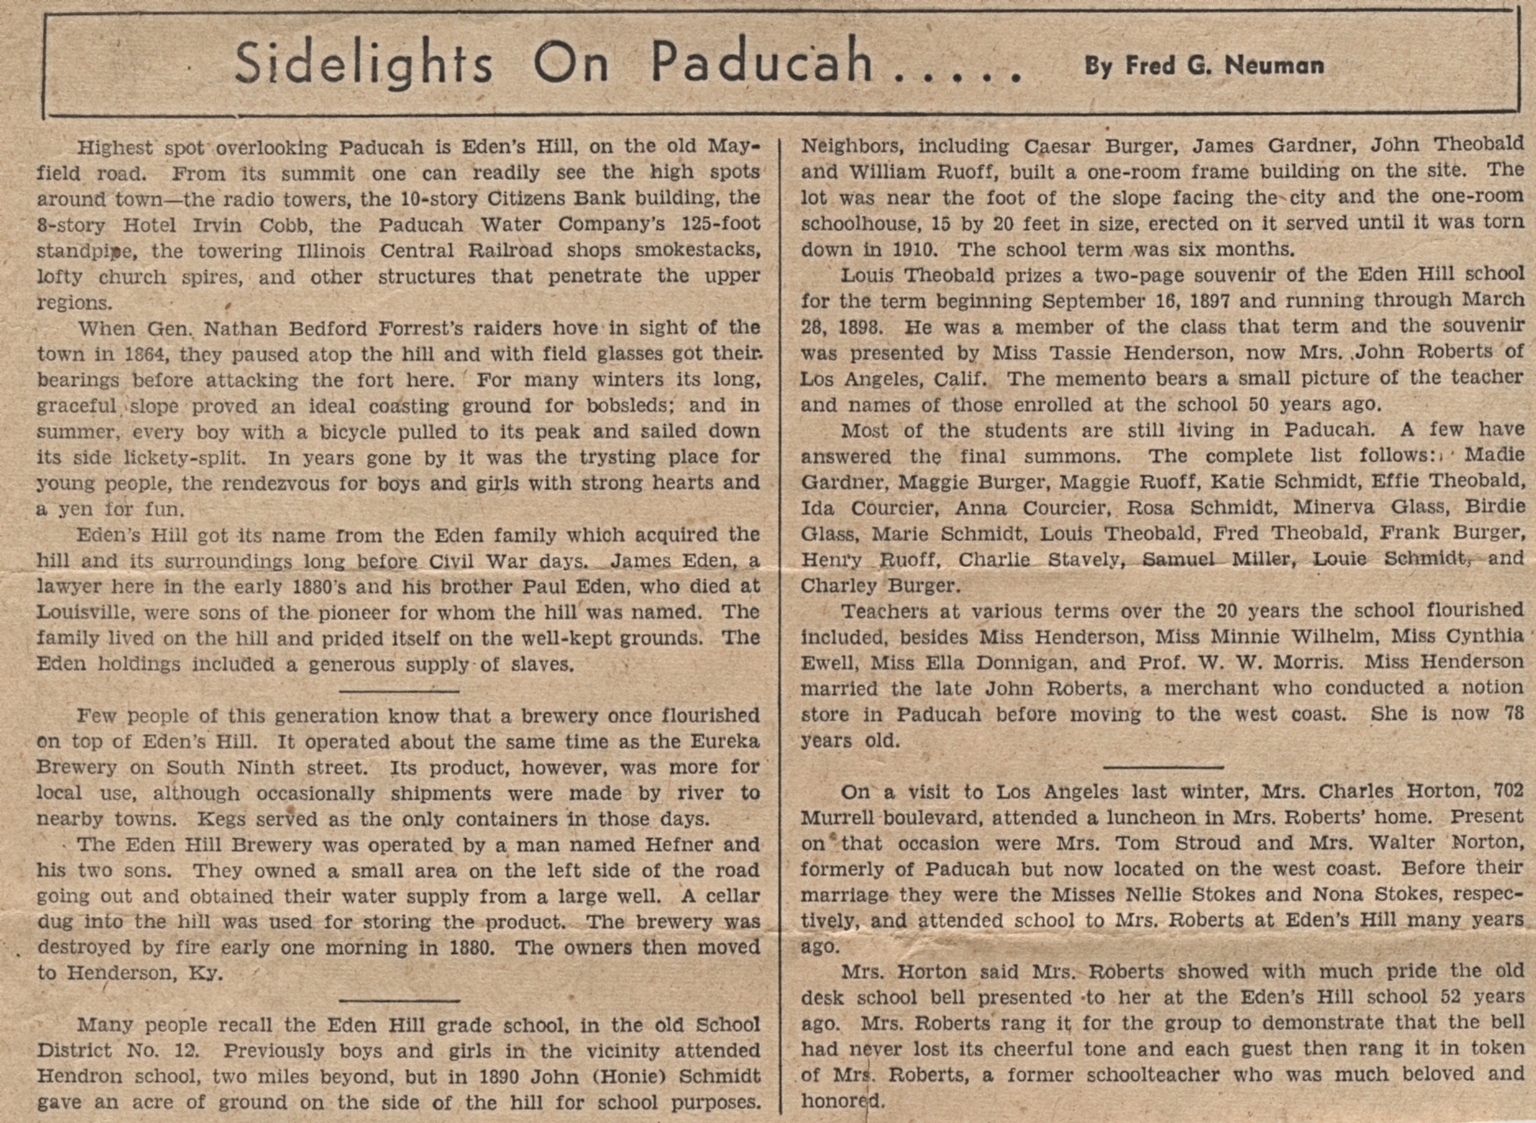 Newspaper article giving history of Eden's Hill in Paducah (KY)